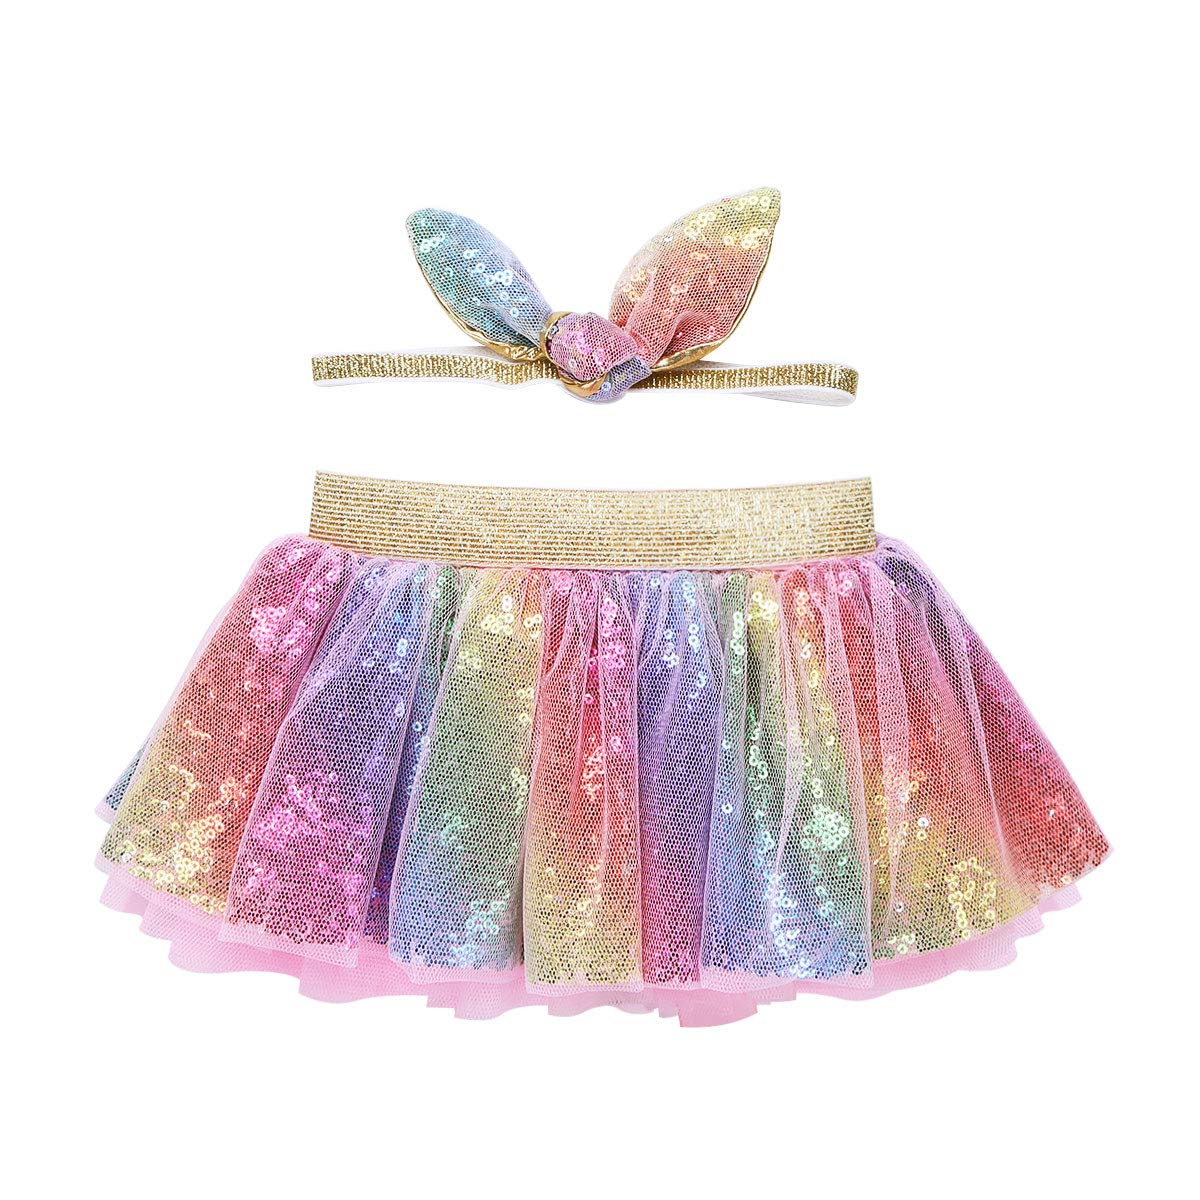 TiaoBug Kids Baby Girls Shiny Sequins Layered Ballet Tulle Rainbow Tutu Skirt Dress up Colorful Hair Bows